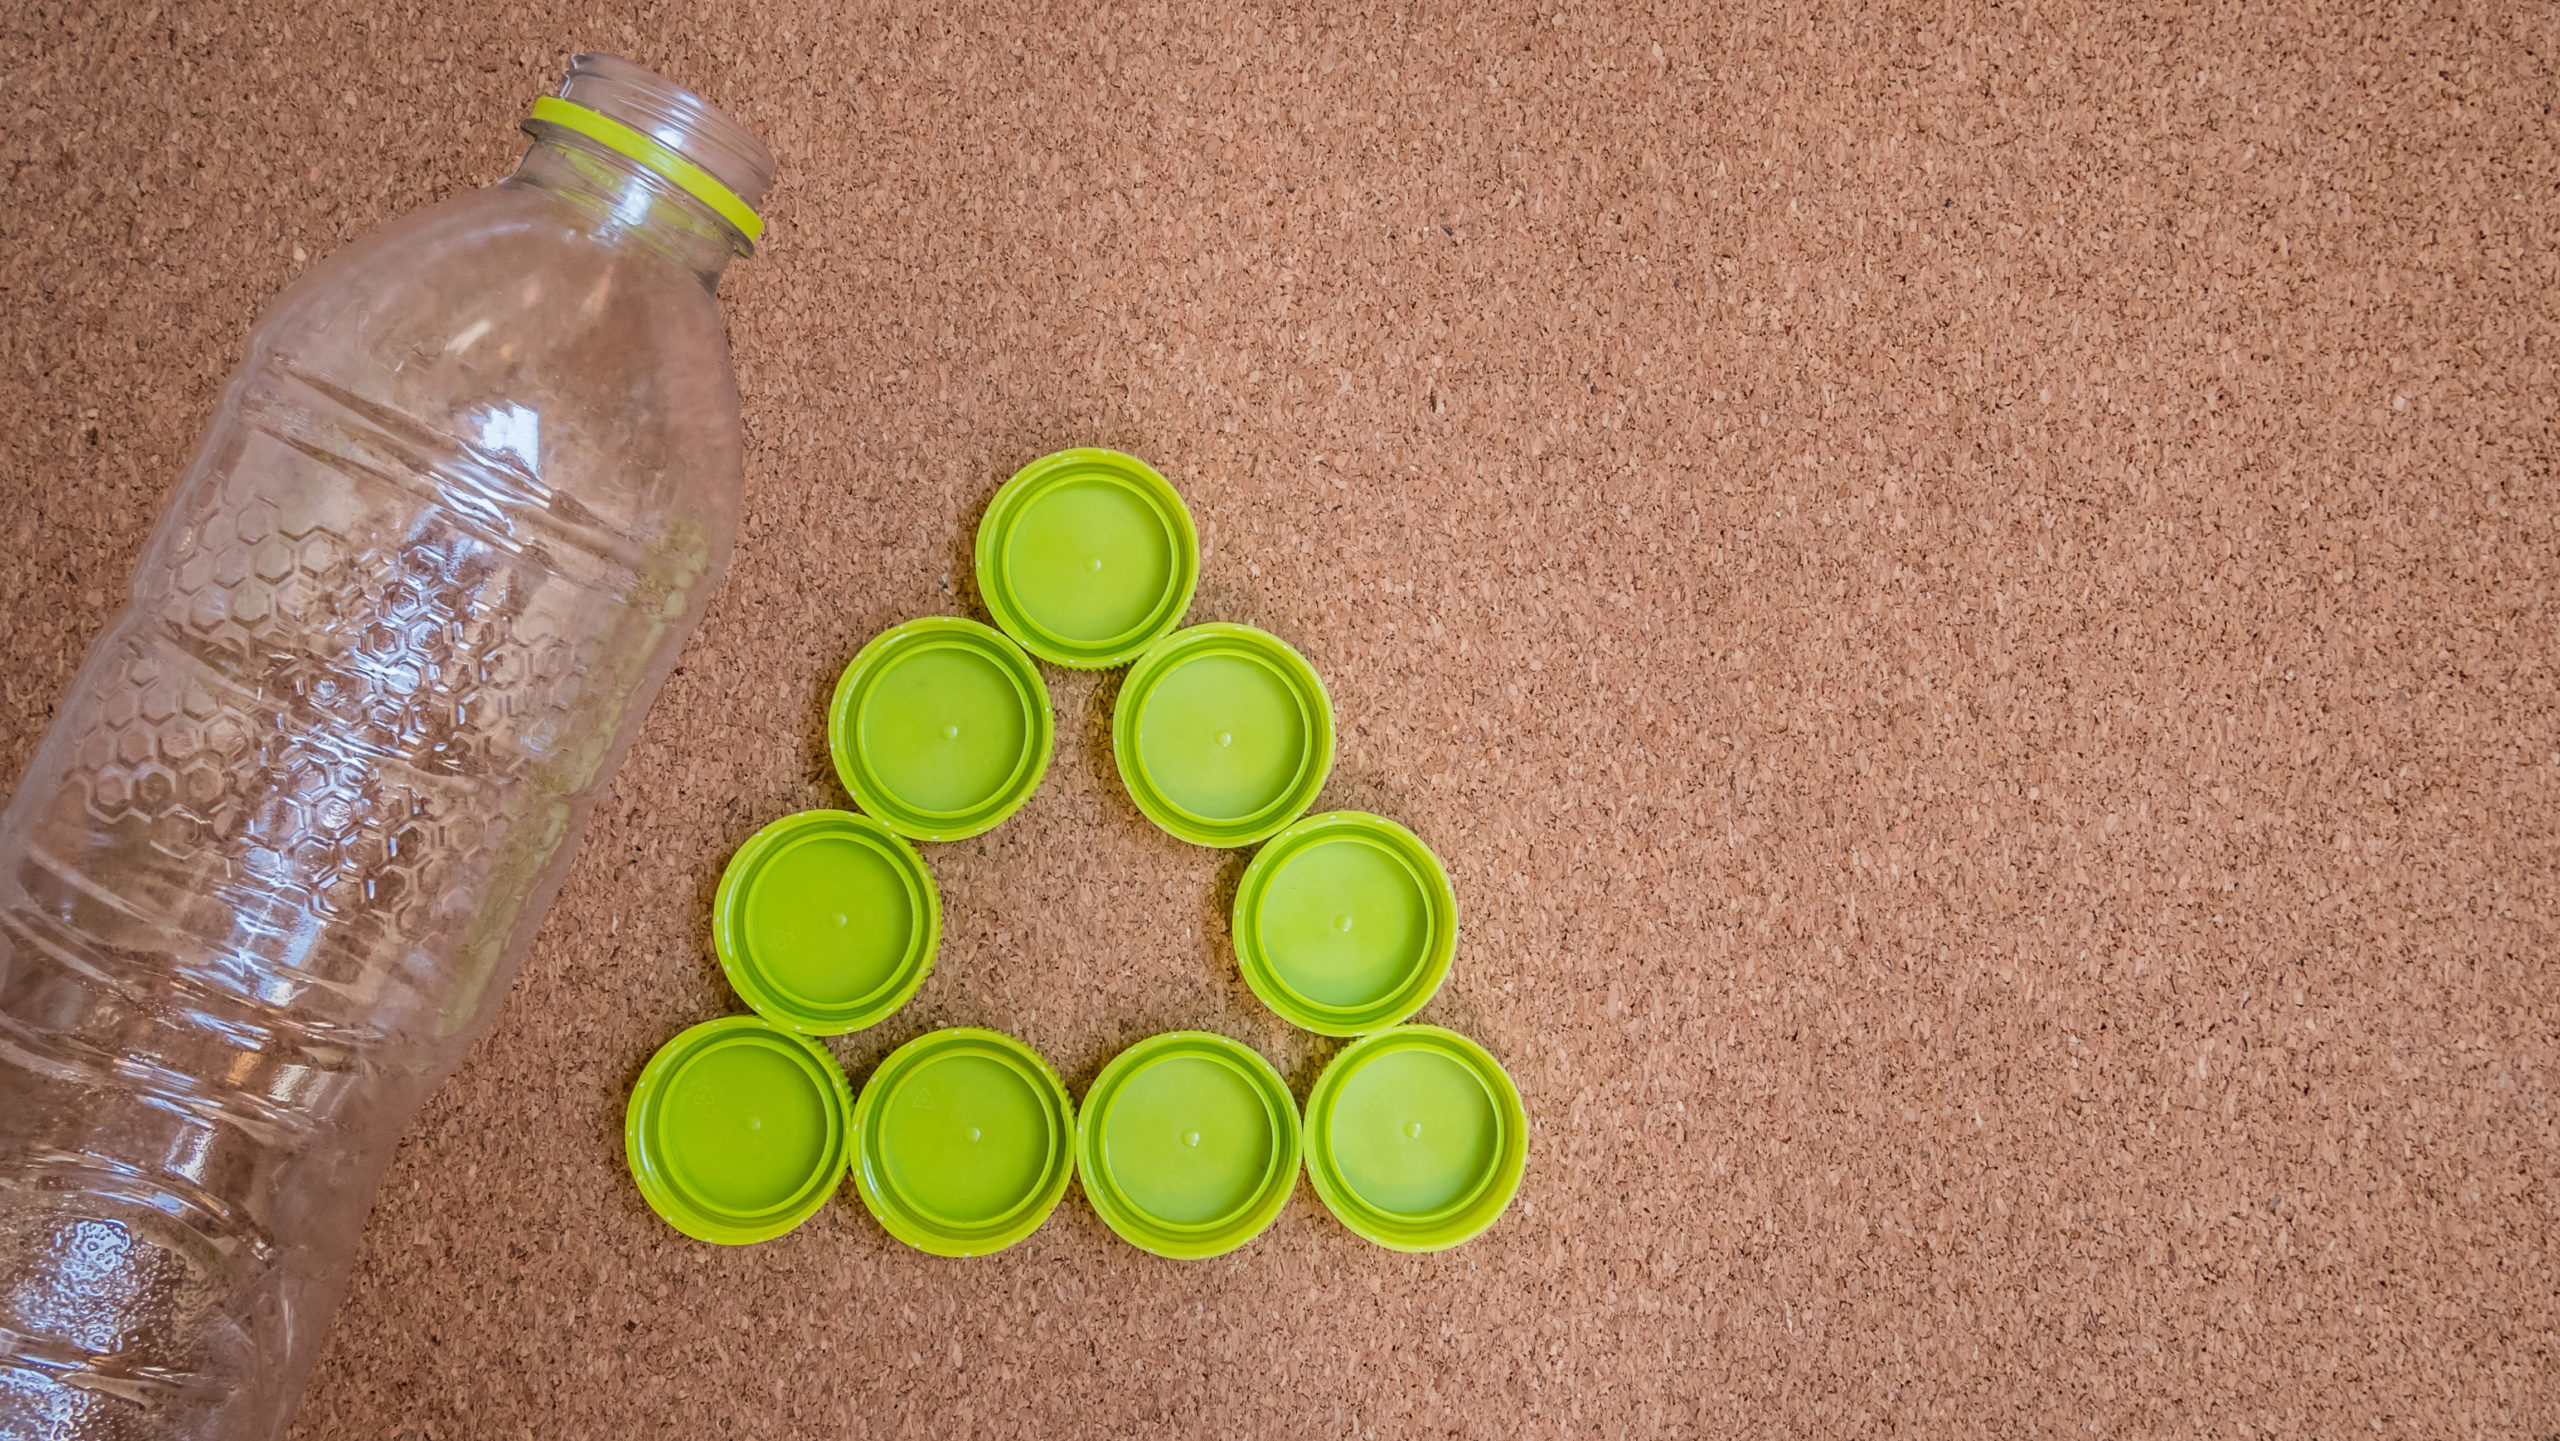 A world without plastic. Newsflash, it may not be as favourable as what we think